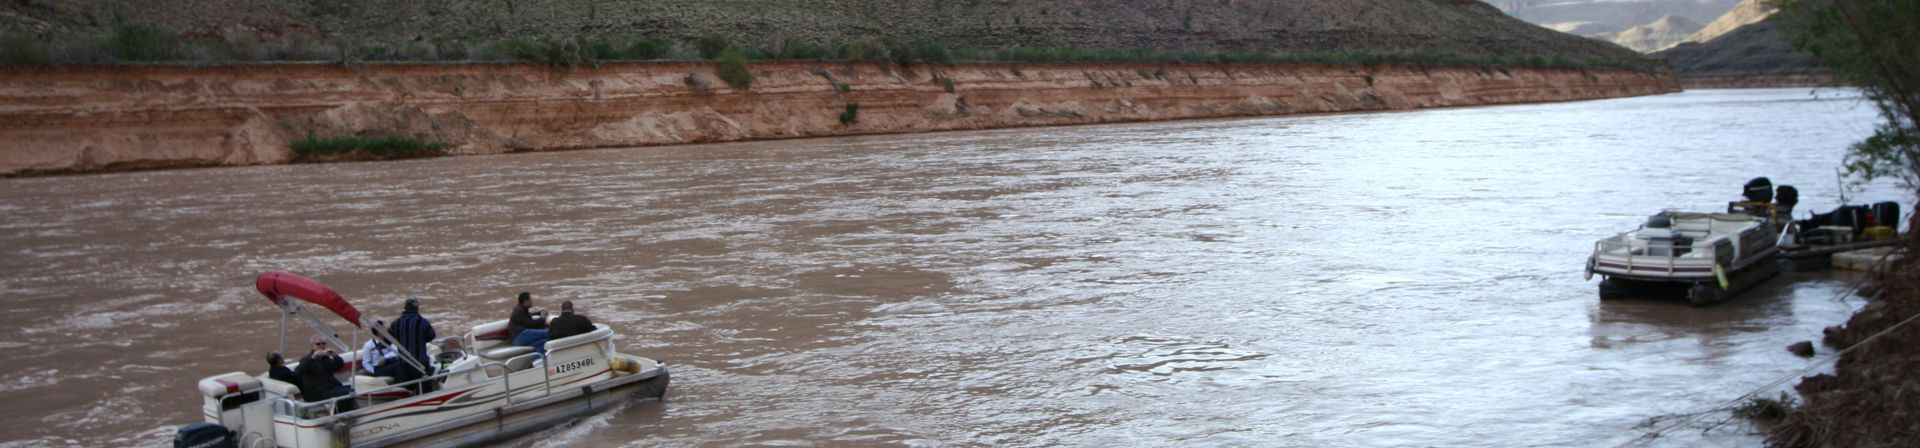 A pair of boats on the west end of the Colorado River, part of the Grand Canyon Helicopter landing tour